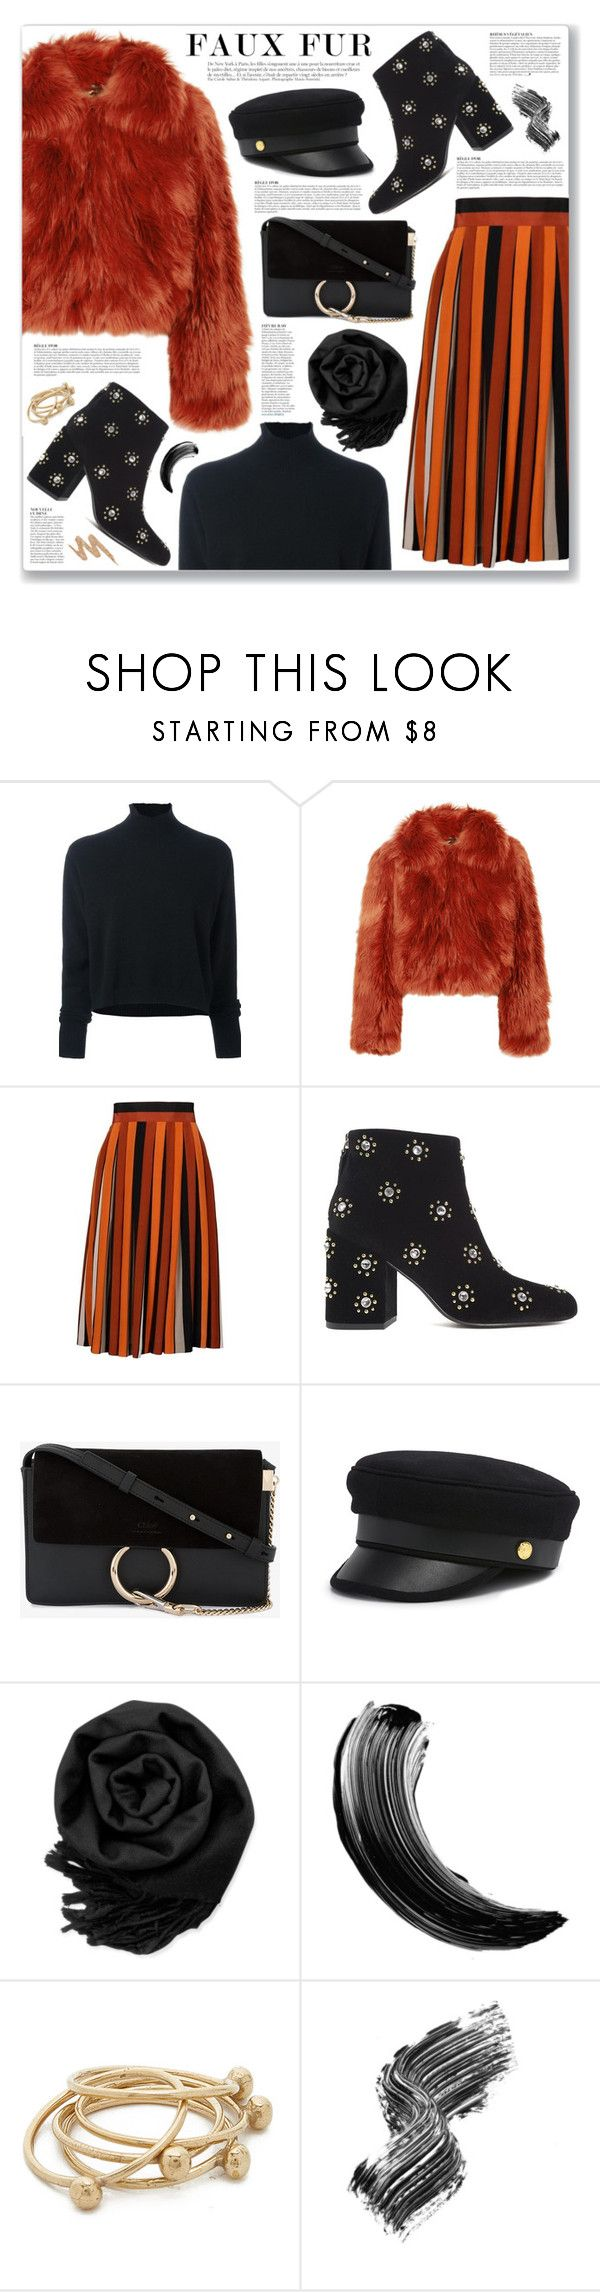 """""""Wow Factor: Faux Fur"""" by myduza-and-koteczka ❤ liked on Polyvore featuring Le Kasha, Maison Margiela, Givenchy, Senso, Anja, Chloé, Henri Bendel, Gearonic, Maybelline and Jacqueline Rose"""